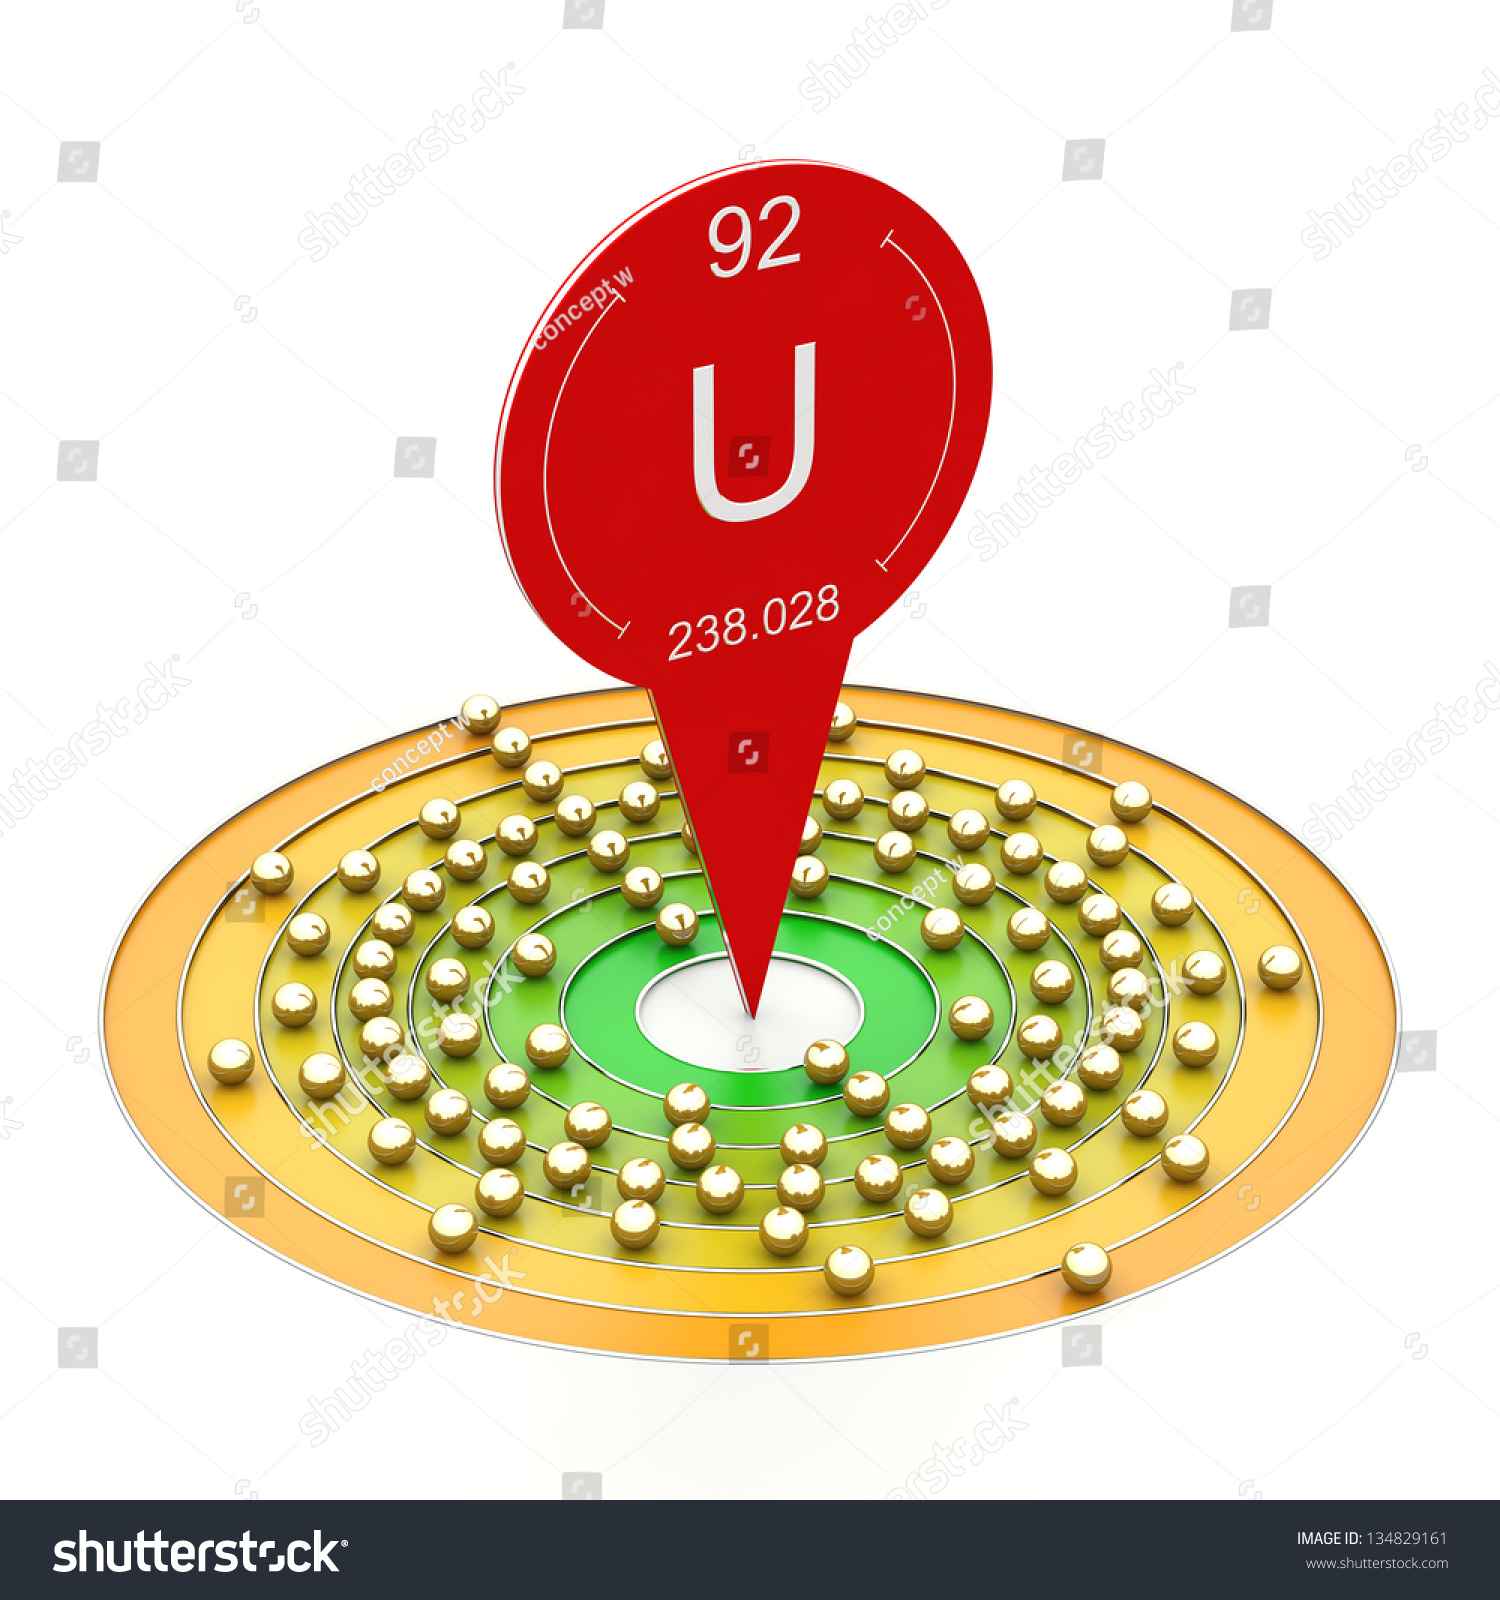 Uranium element periodic table electron configuration stock uranium element from periodic table electron configuration gamestrikefo Image collections